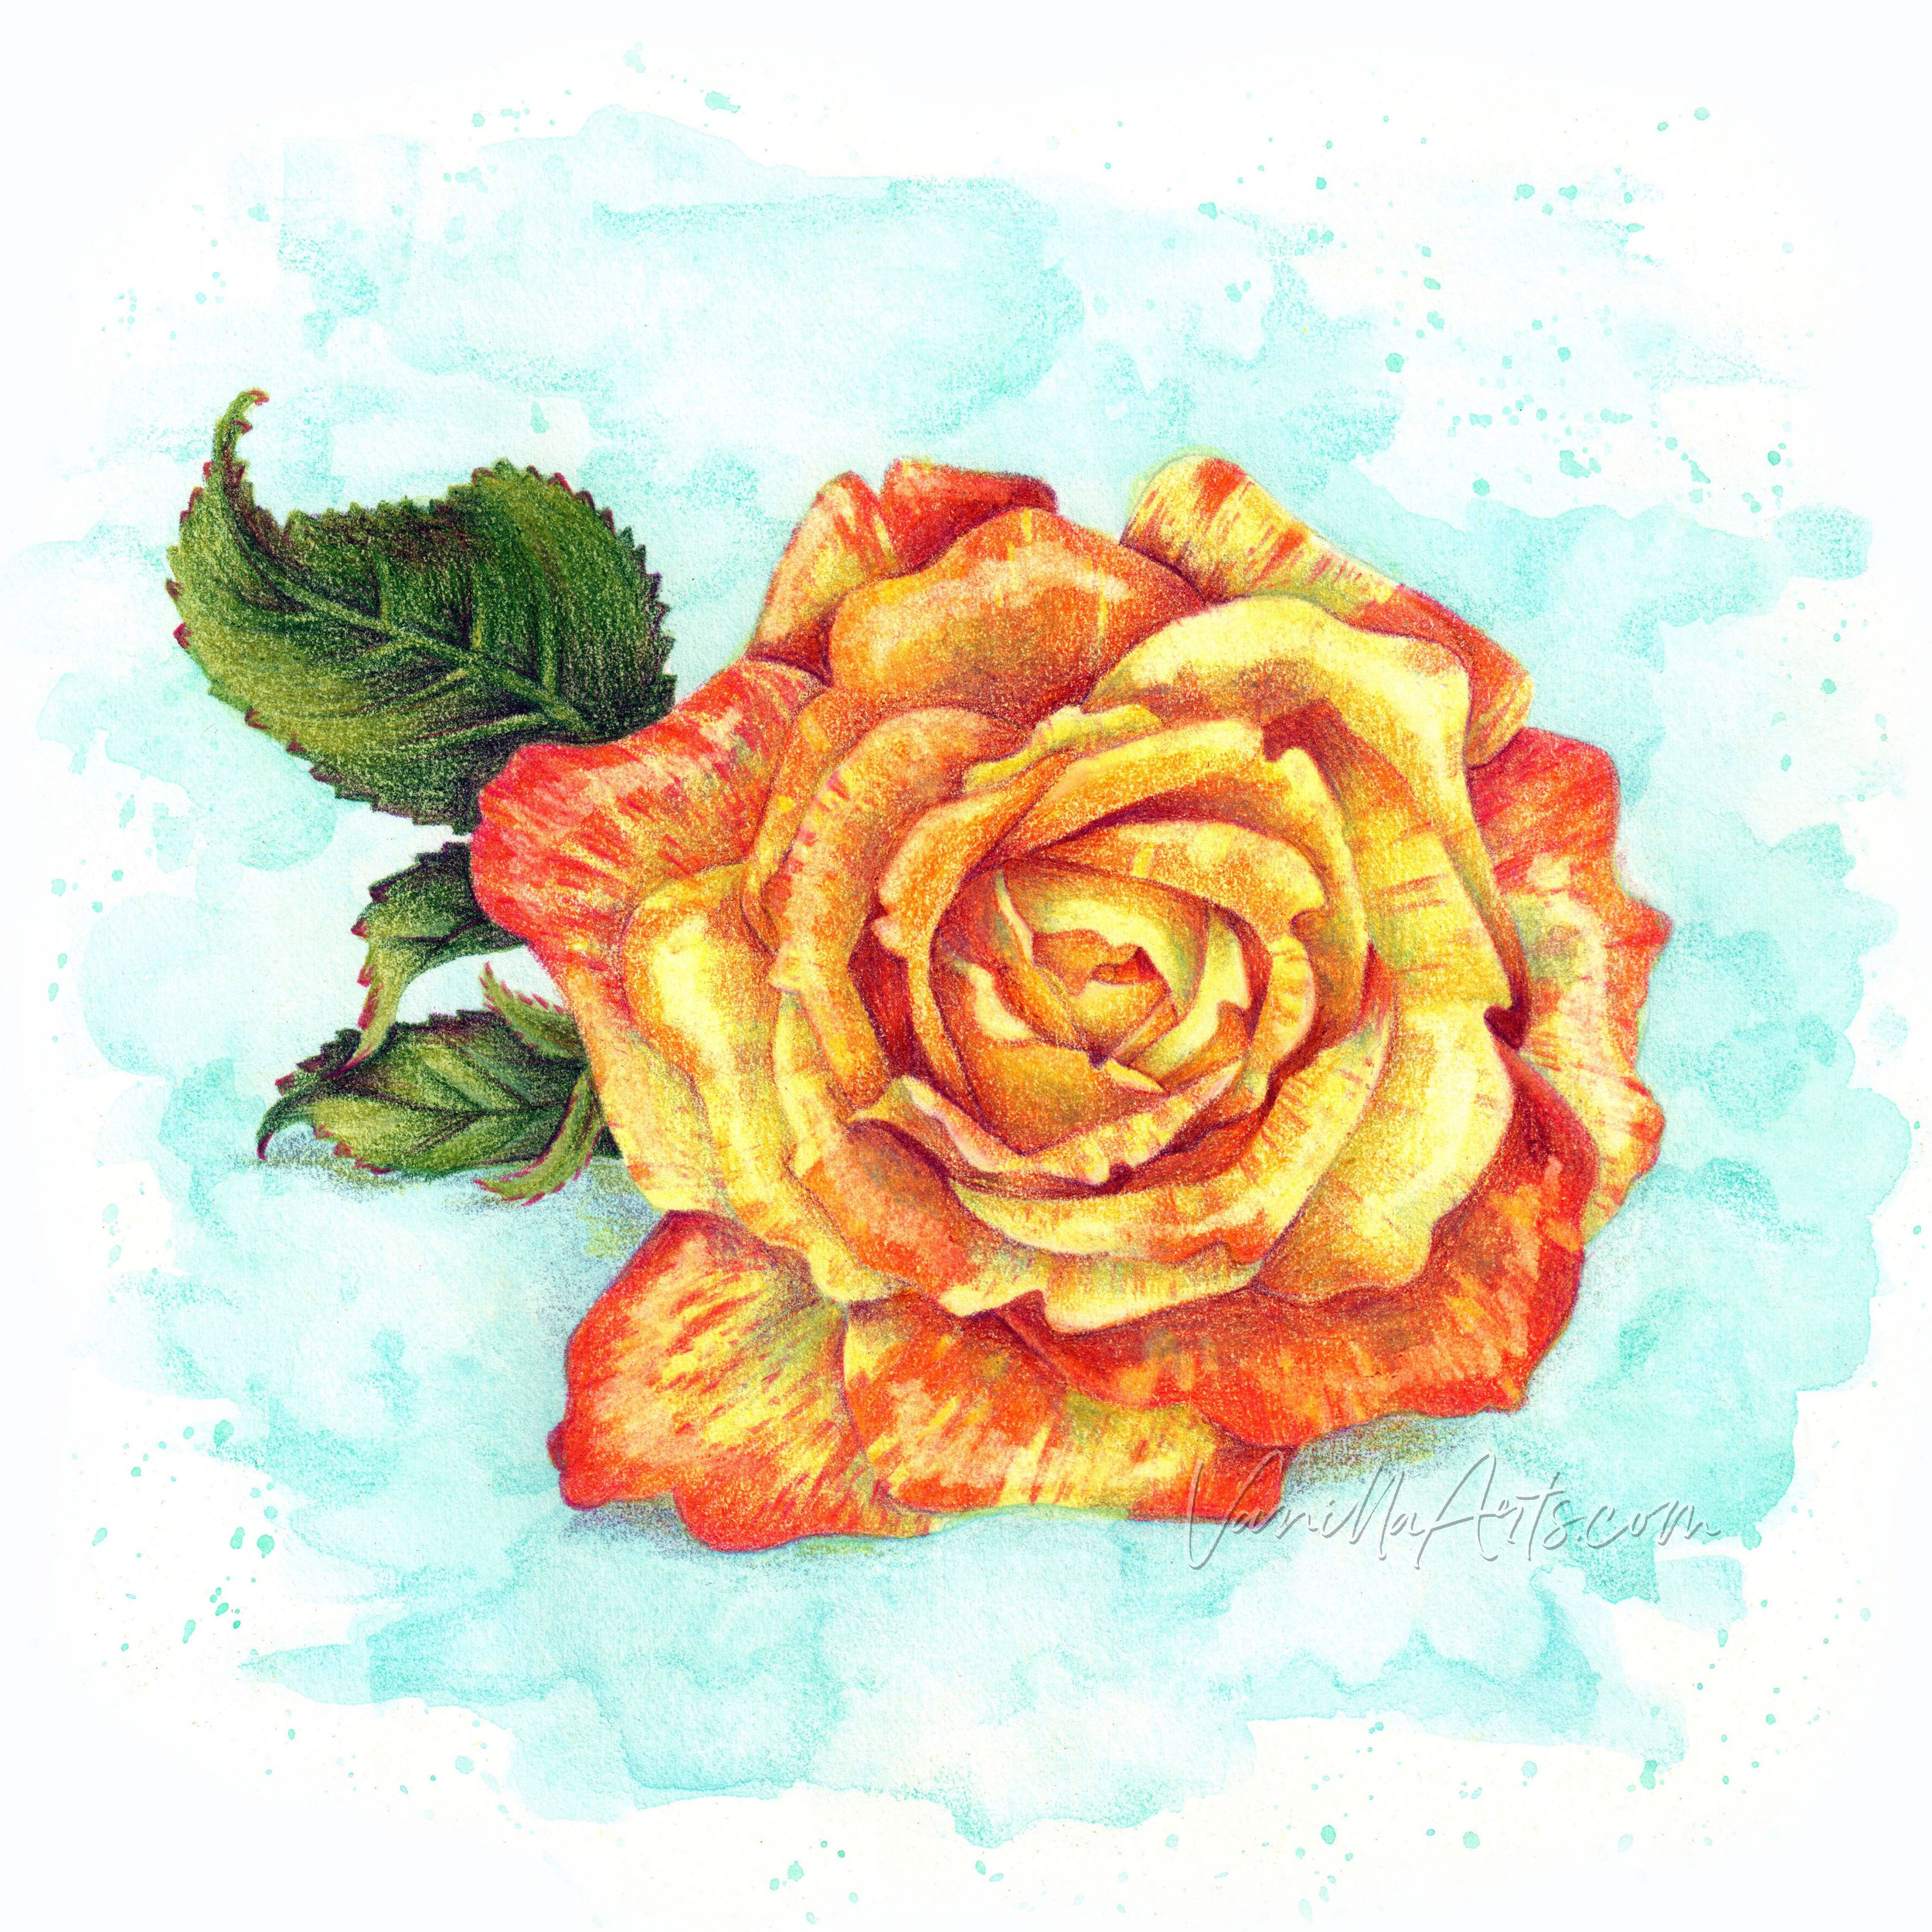 Learn to use colored pencils the way an artist uses paint. You can get amazing depth and dimension from your colored pencils but you'll have to ditch the crafty coloring tuts and recipes! | ColoredPencilPlus.com